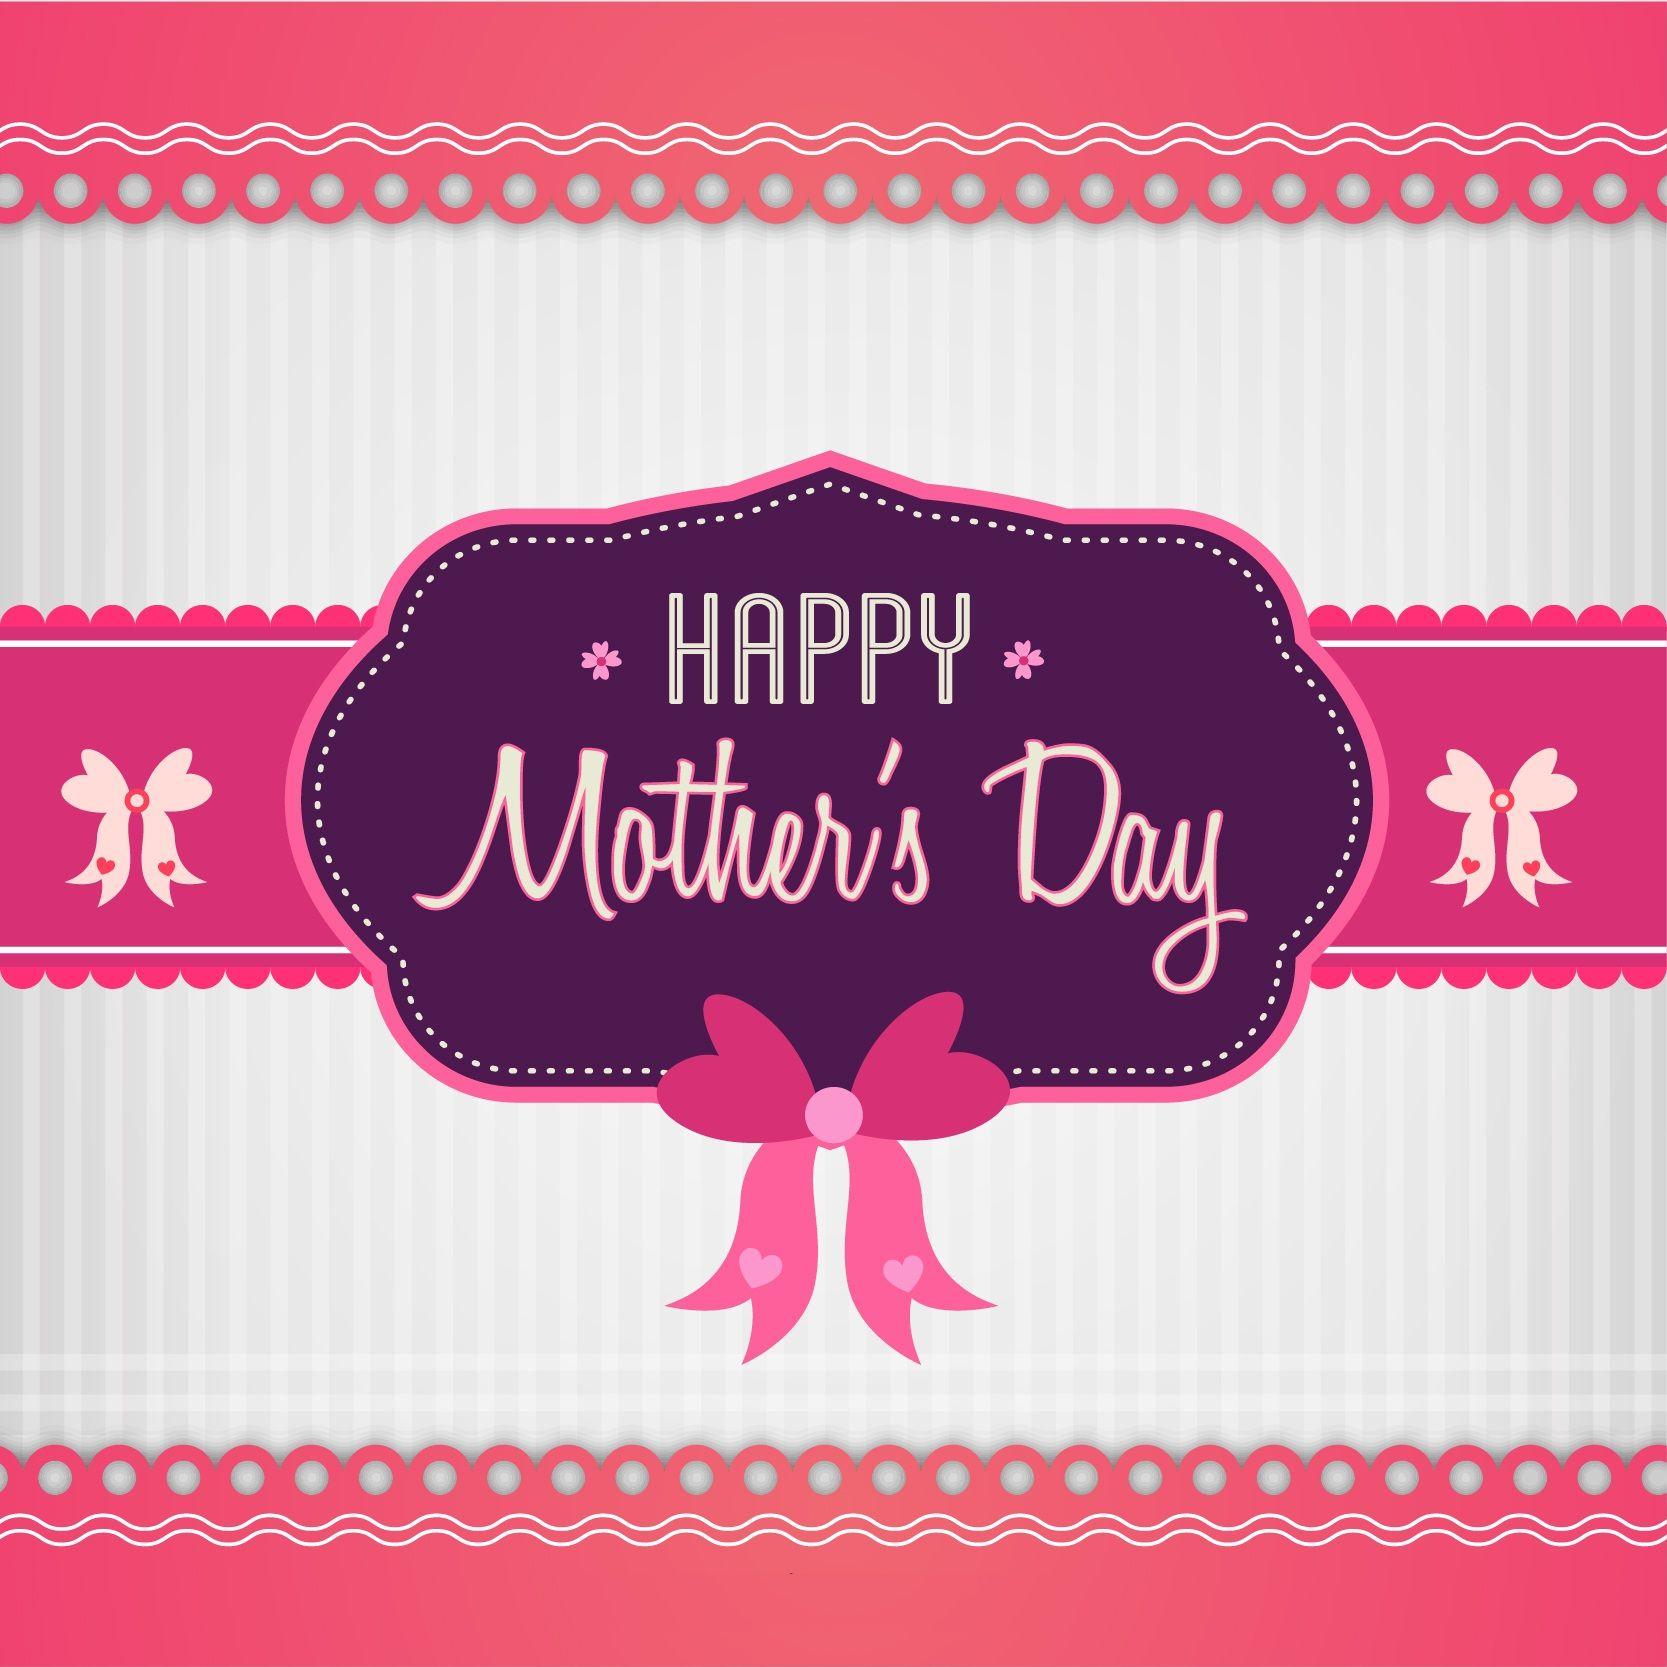 wish you a happy mothers day wishes cards | SHOP DISPLAY